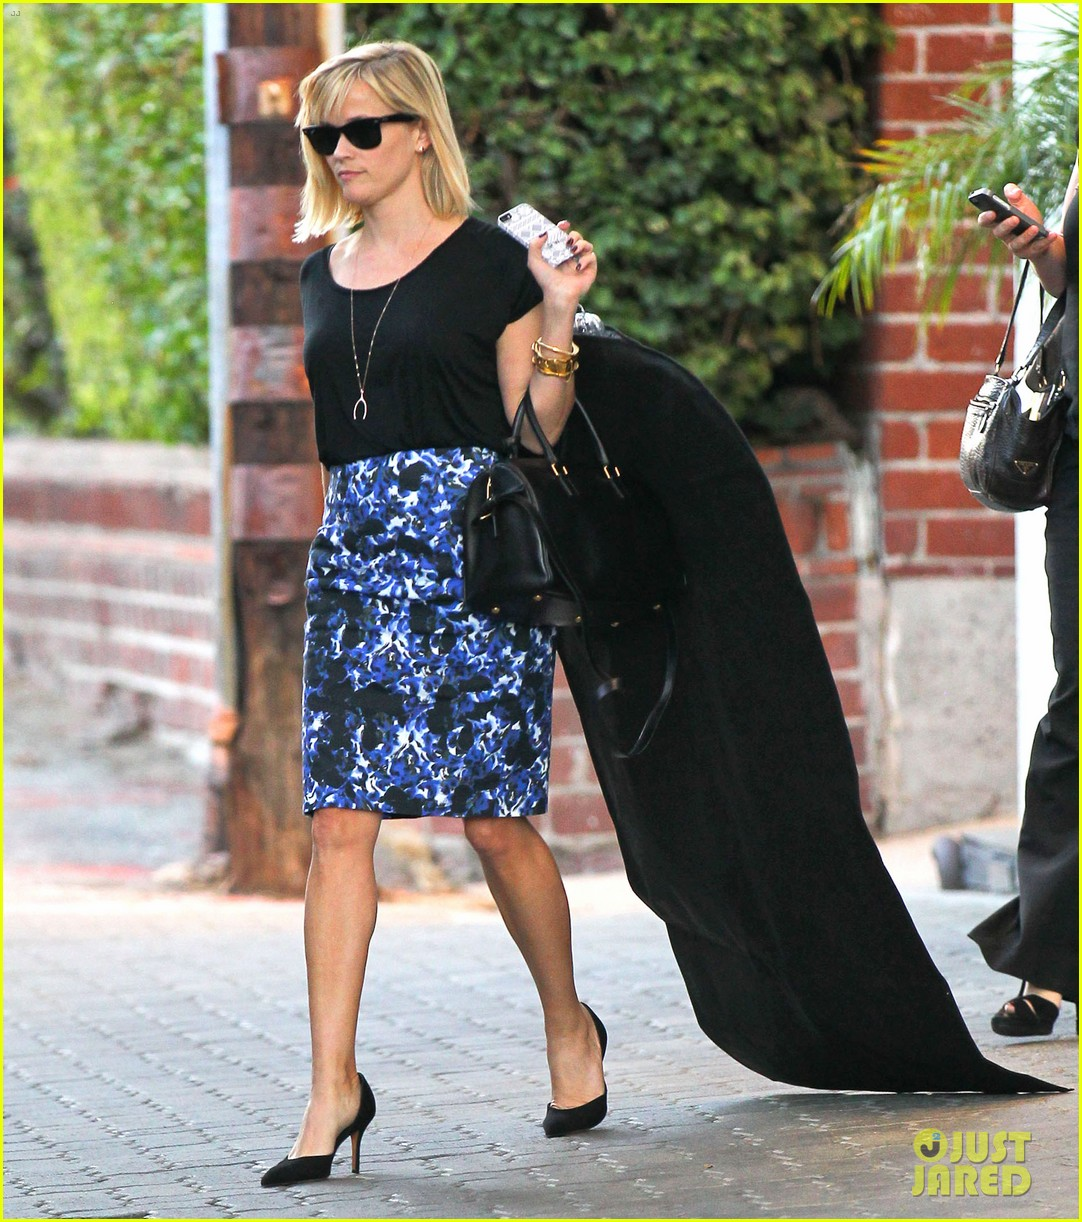 reese witherspoon steps out after the intern news 063033534